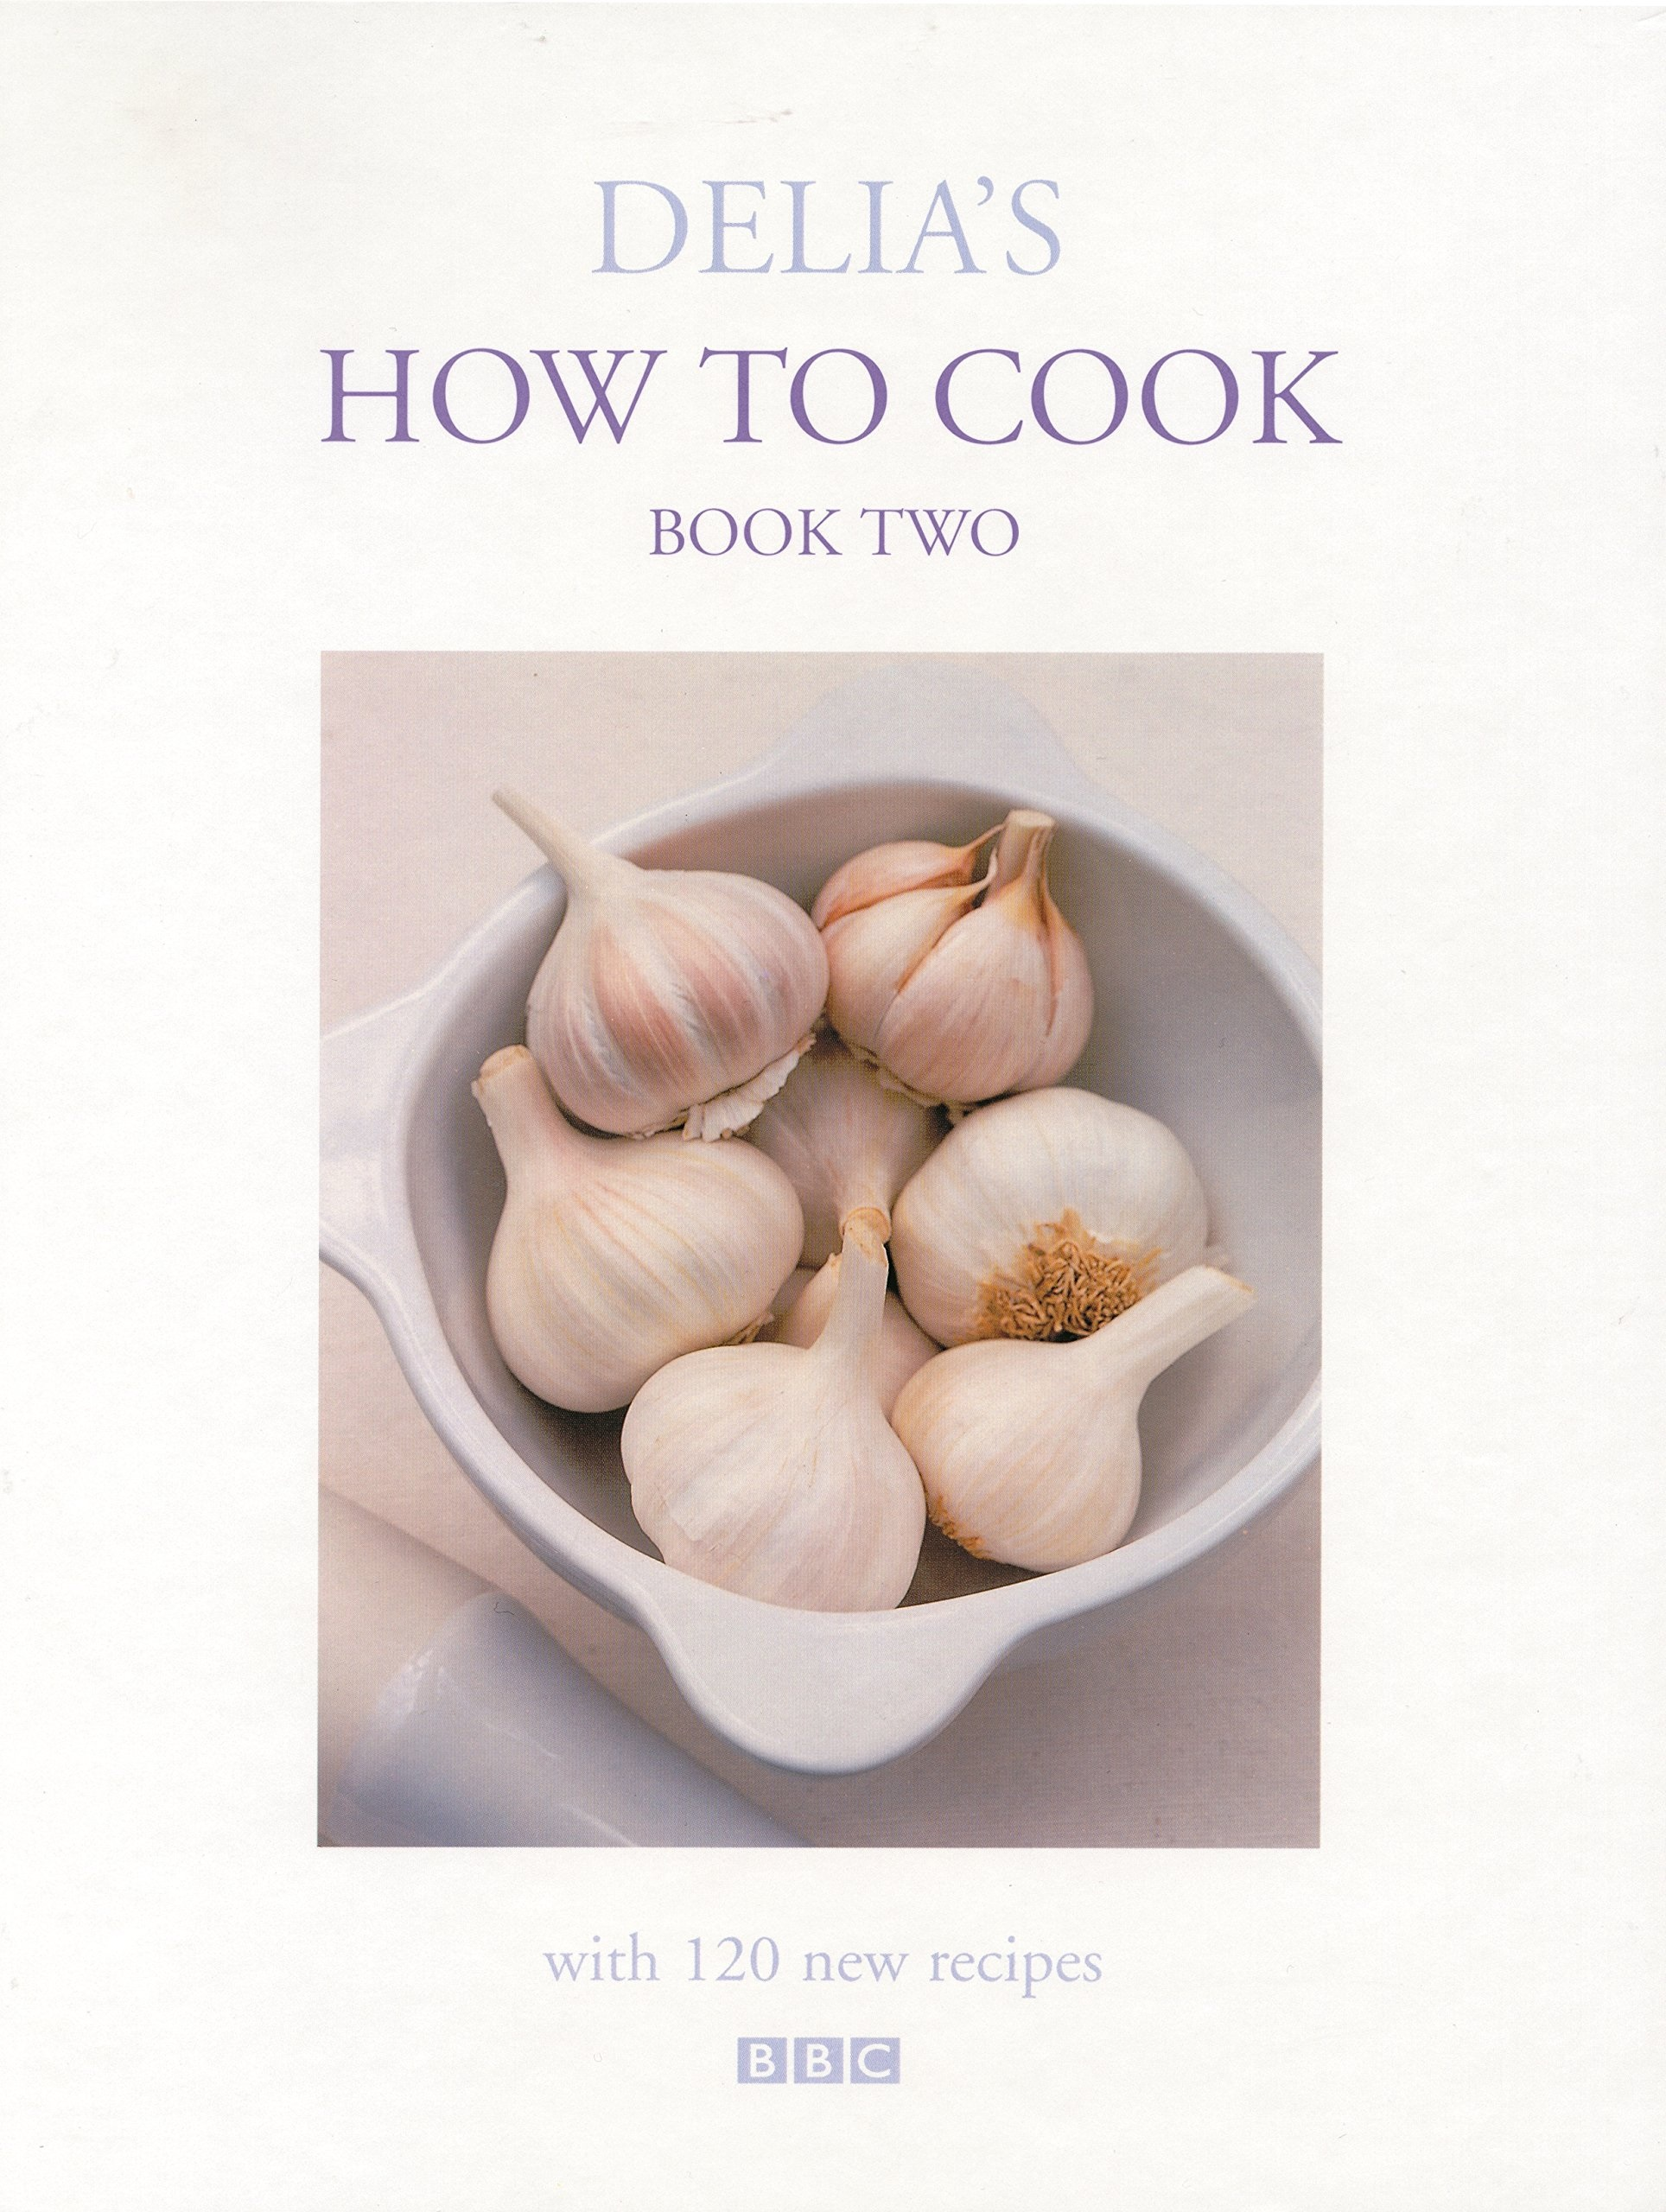 Delia's How to Cook: Book Two (Delia's How to Cook #2)